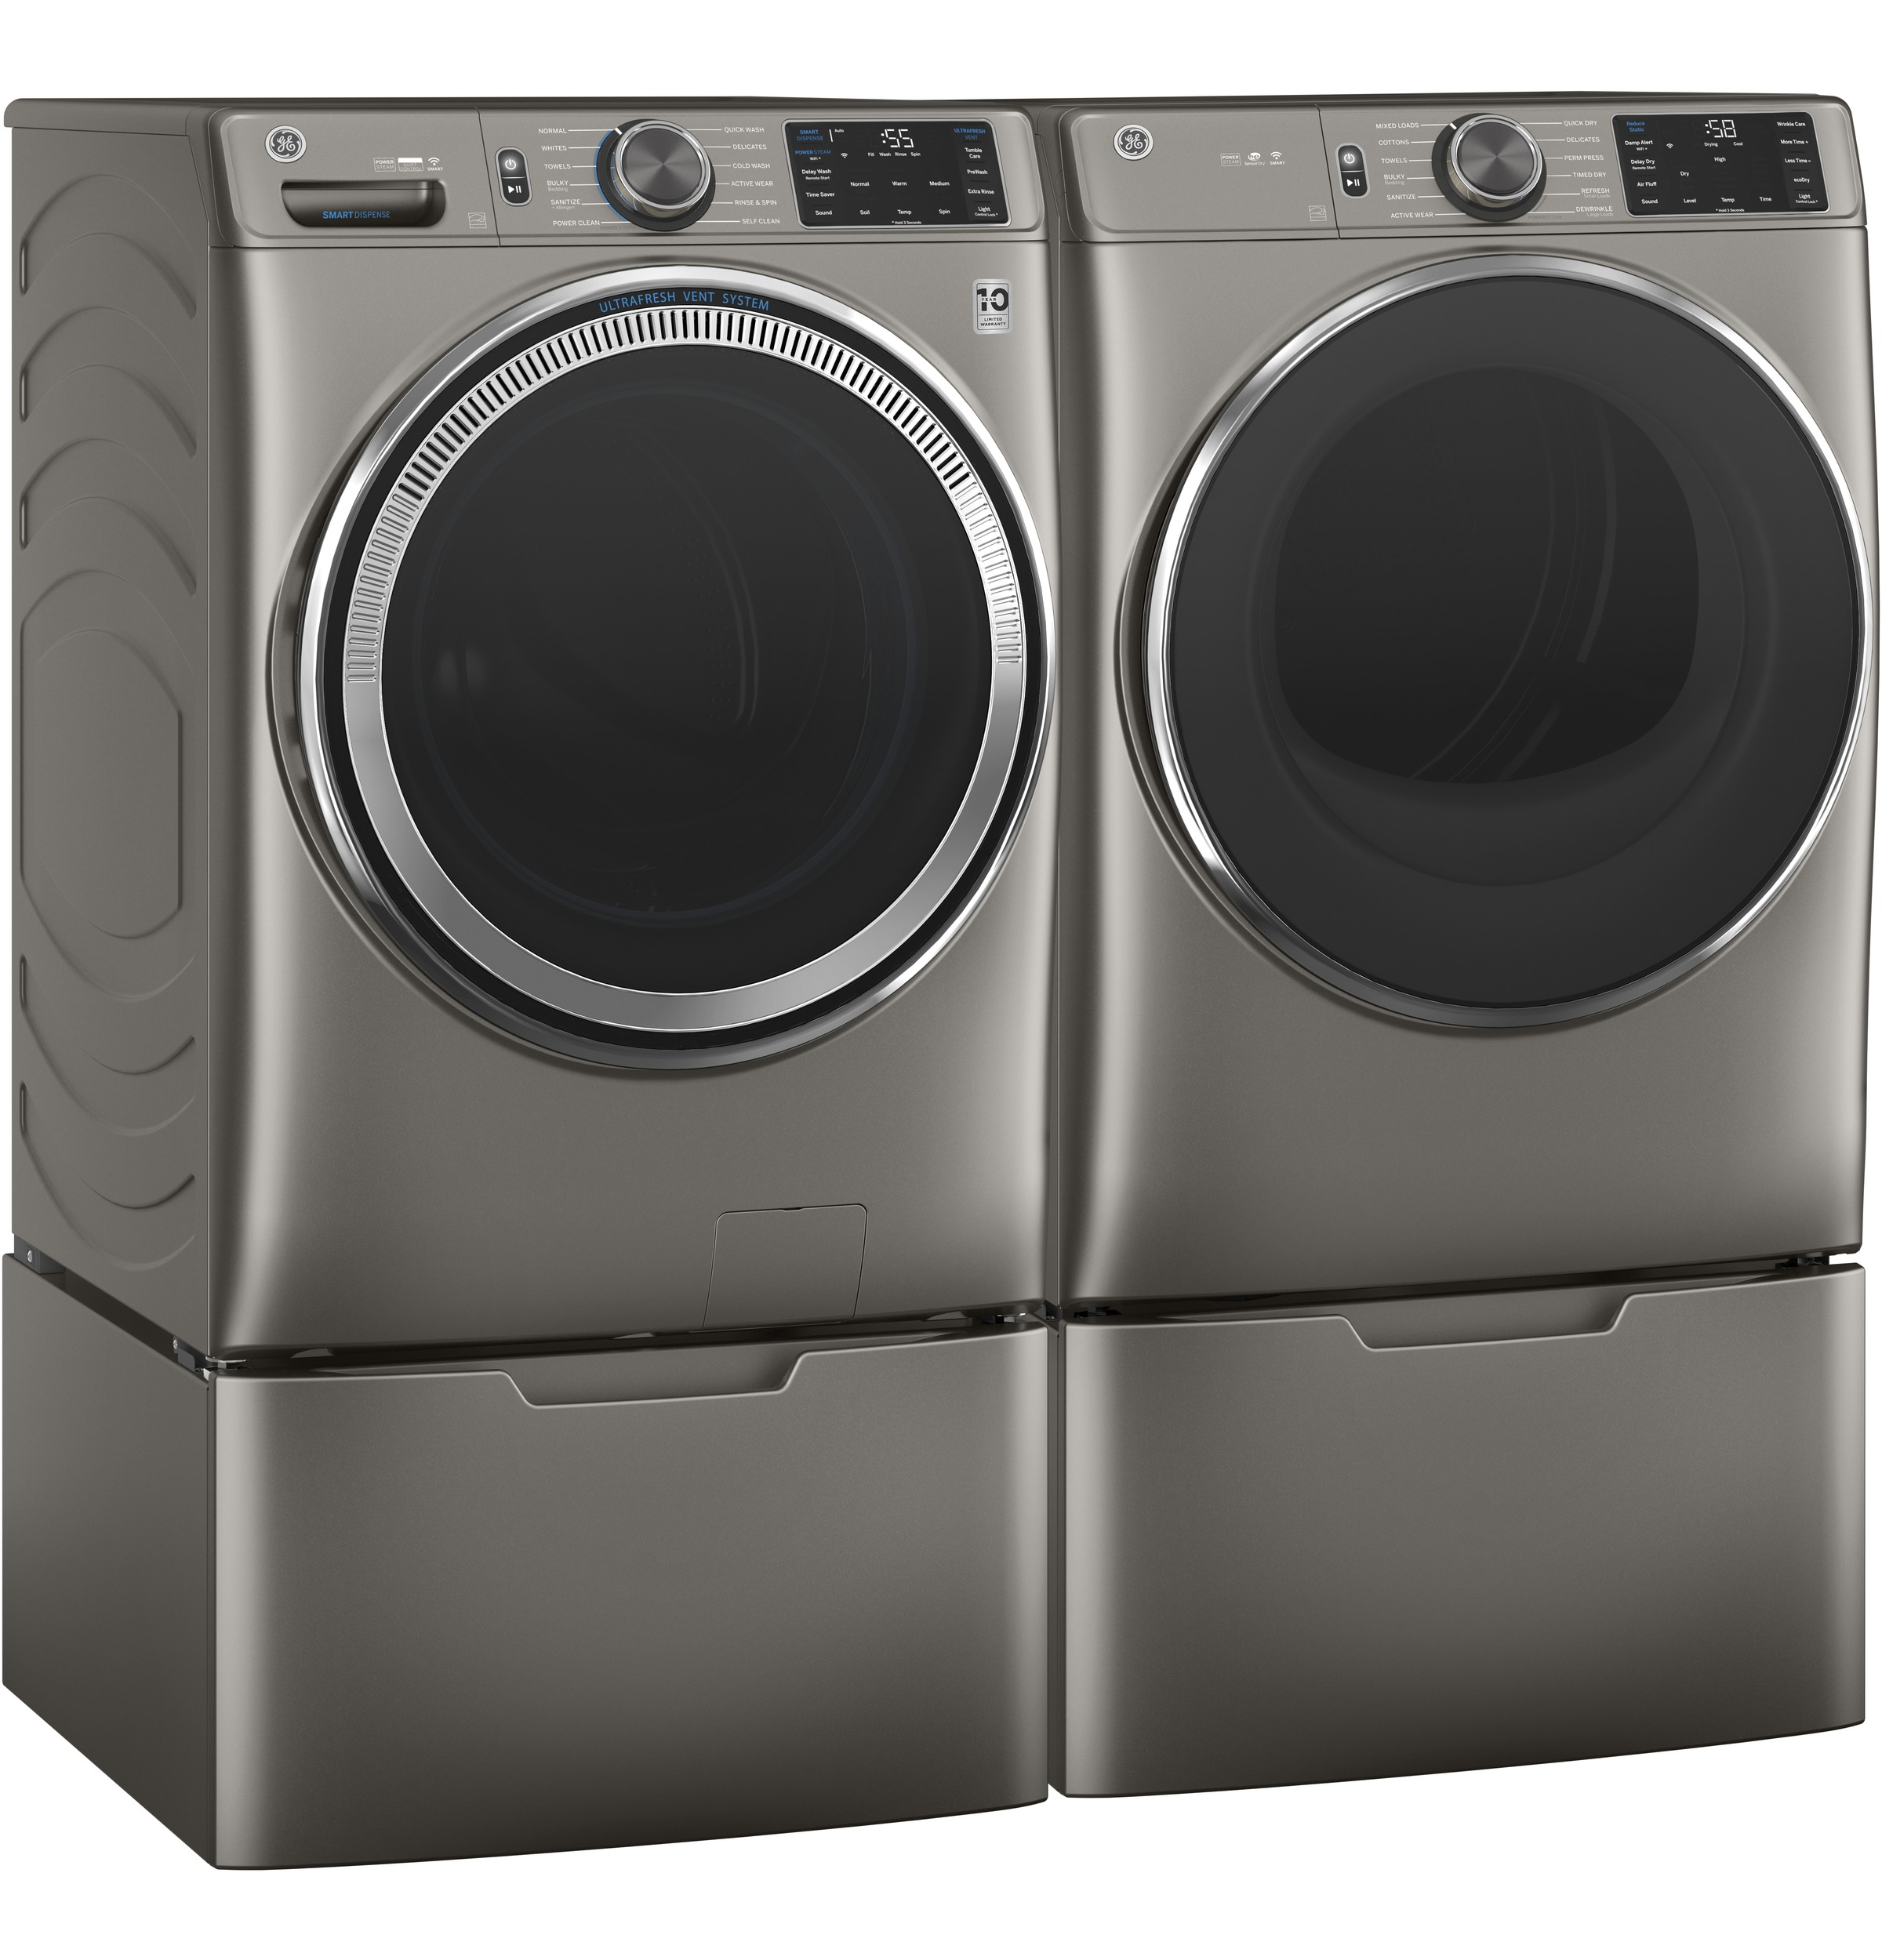 Model: GFD65GSPNSN   GE GE® 7.8 cu. ft. Capacity Smart Front Load Gas Dryer with Steam and Sanitize Cycle